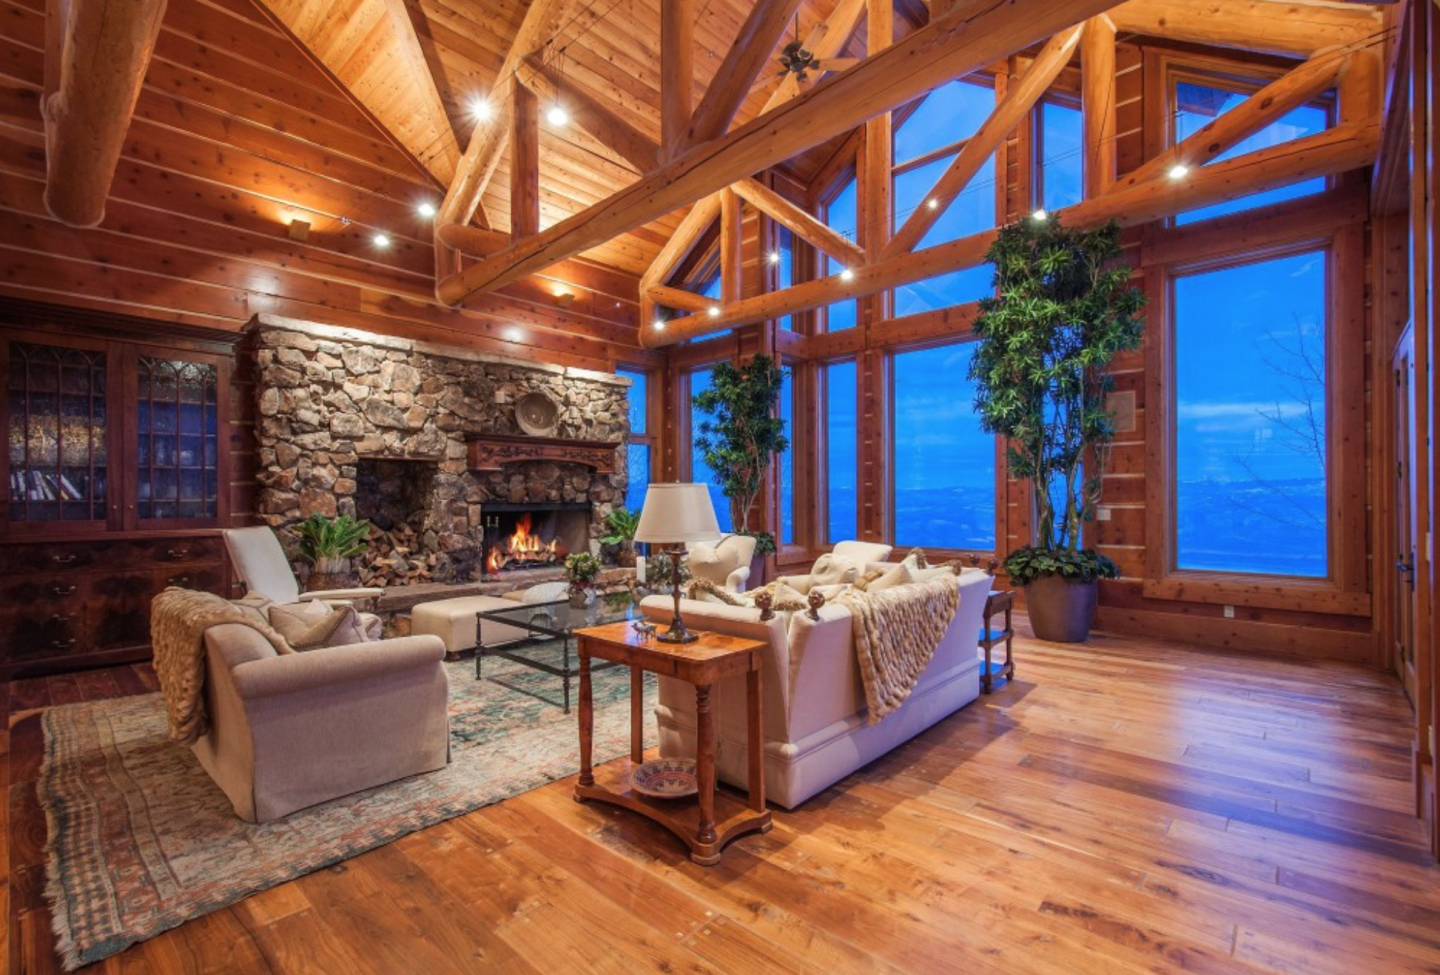 The luxury home features massive wood and stone finishes.